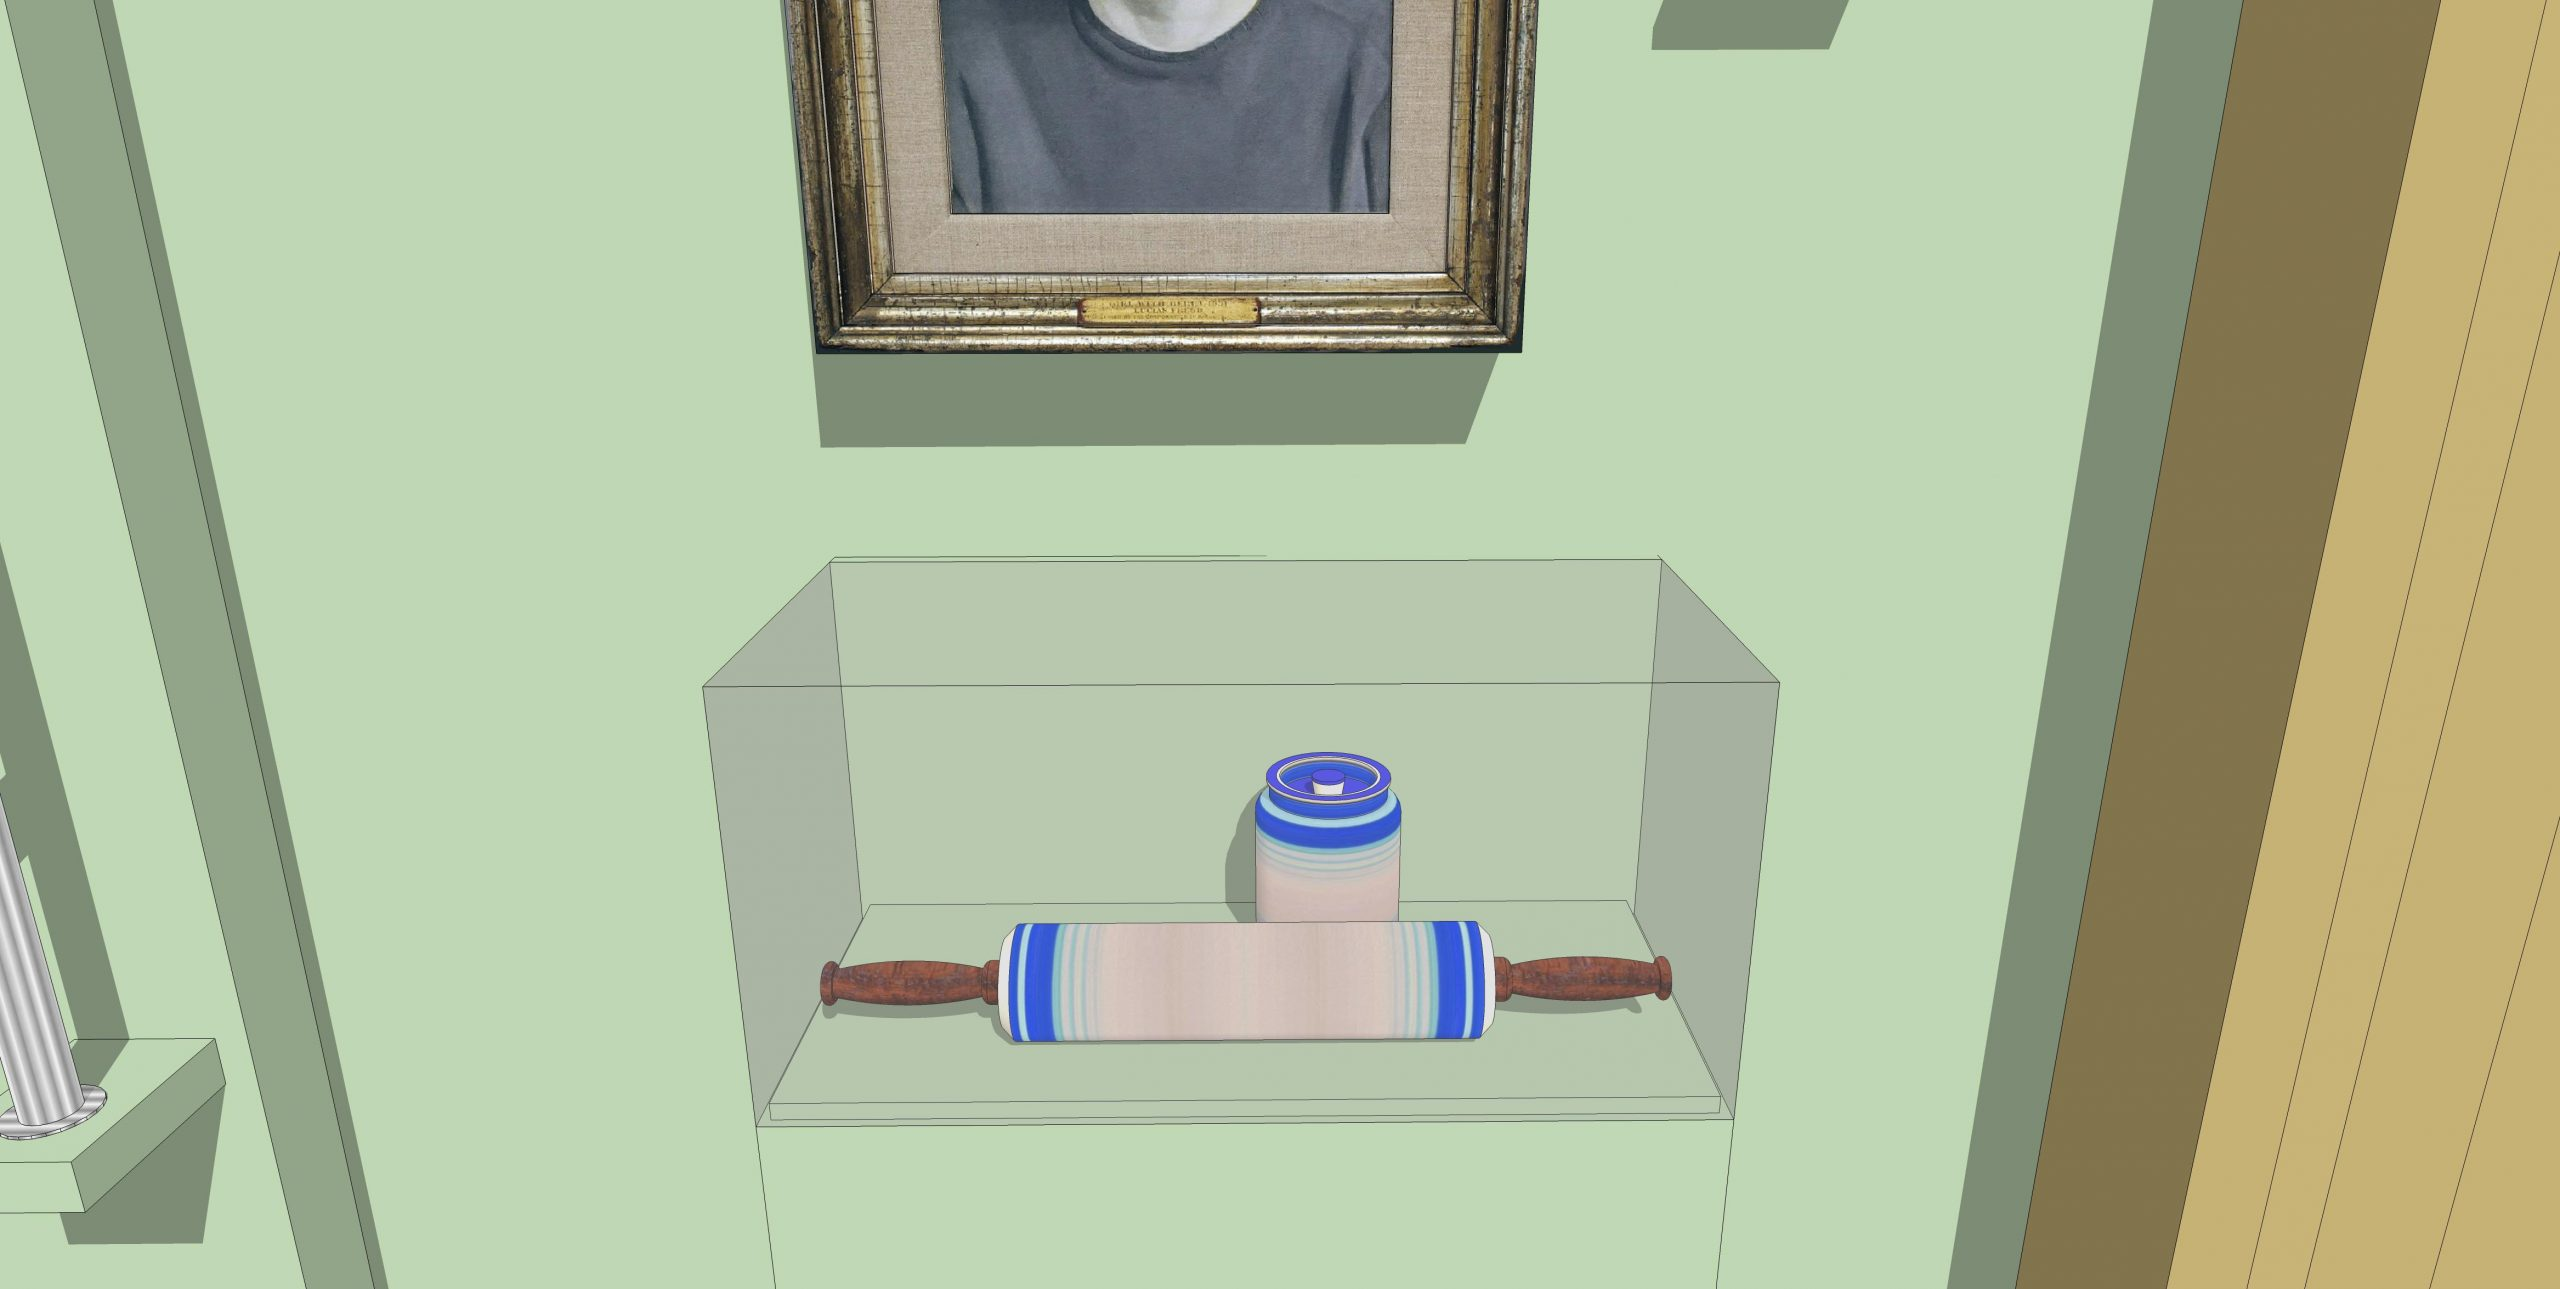 Model of a display case with rolling pin and jar